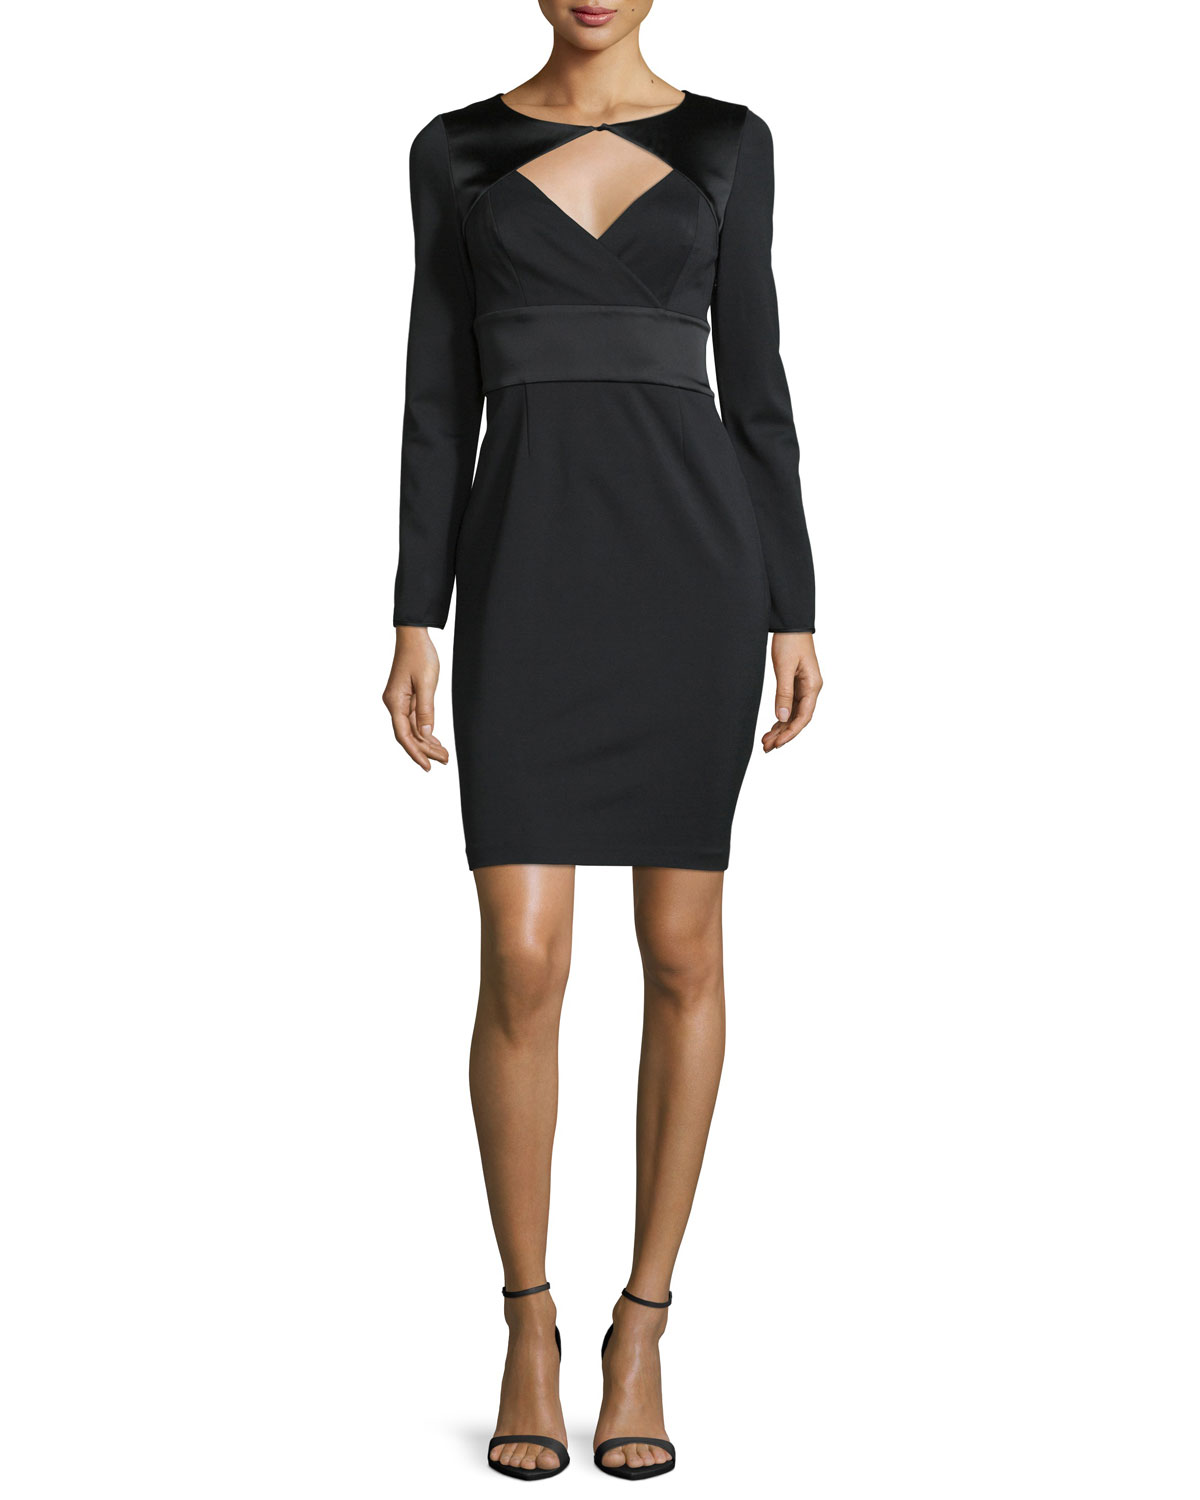 Long-Sleeve Fitted Cocktail Dress, Black